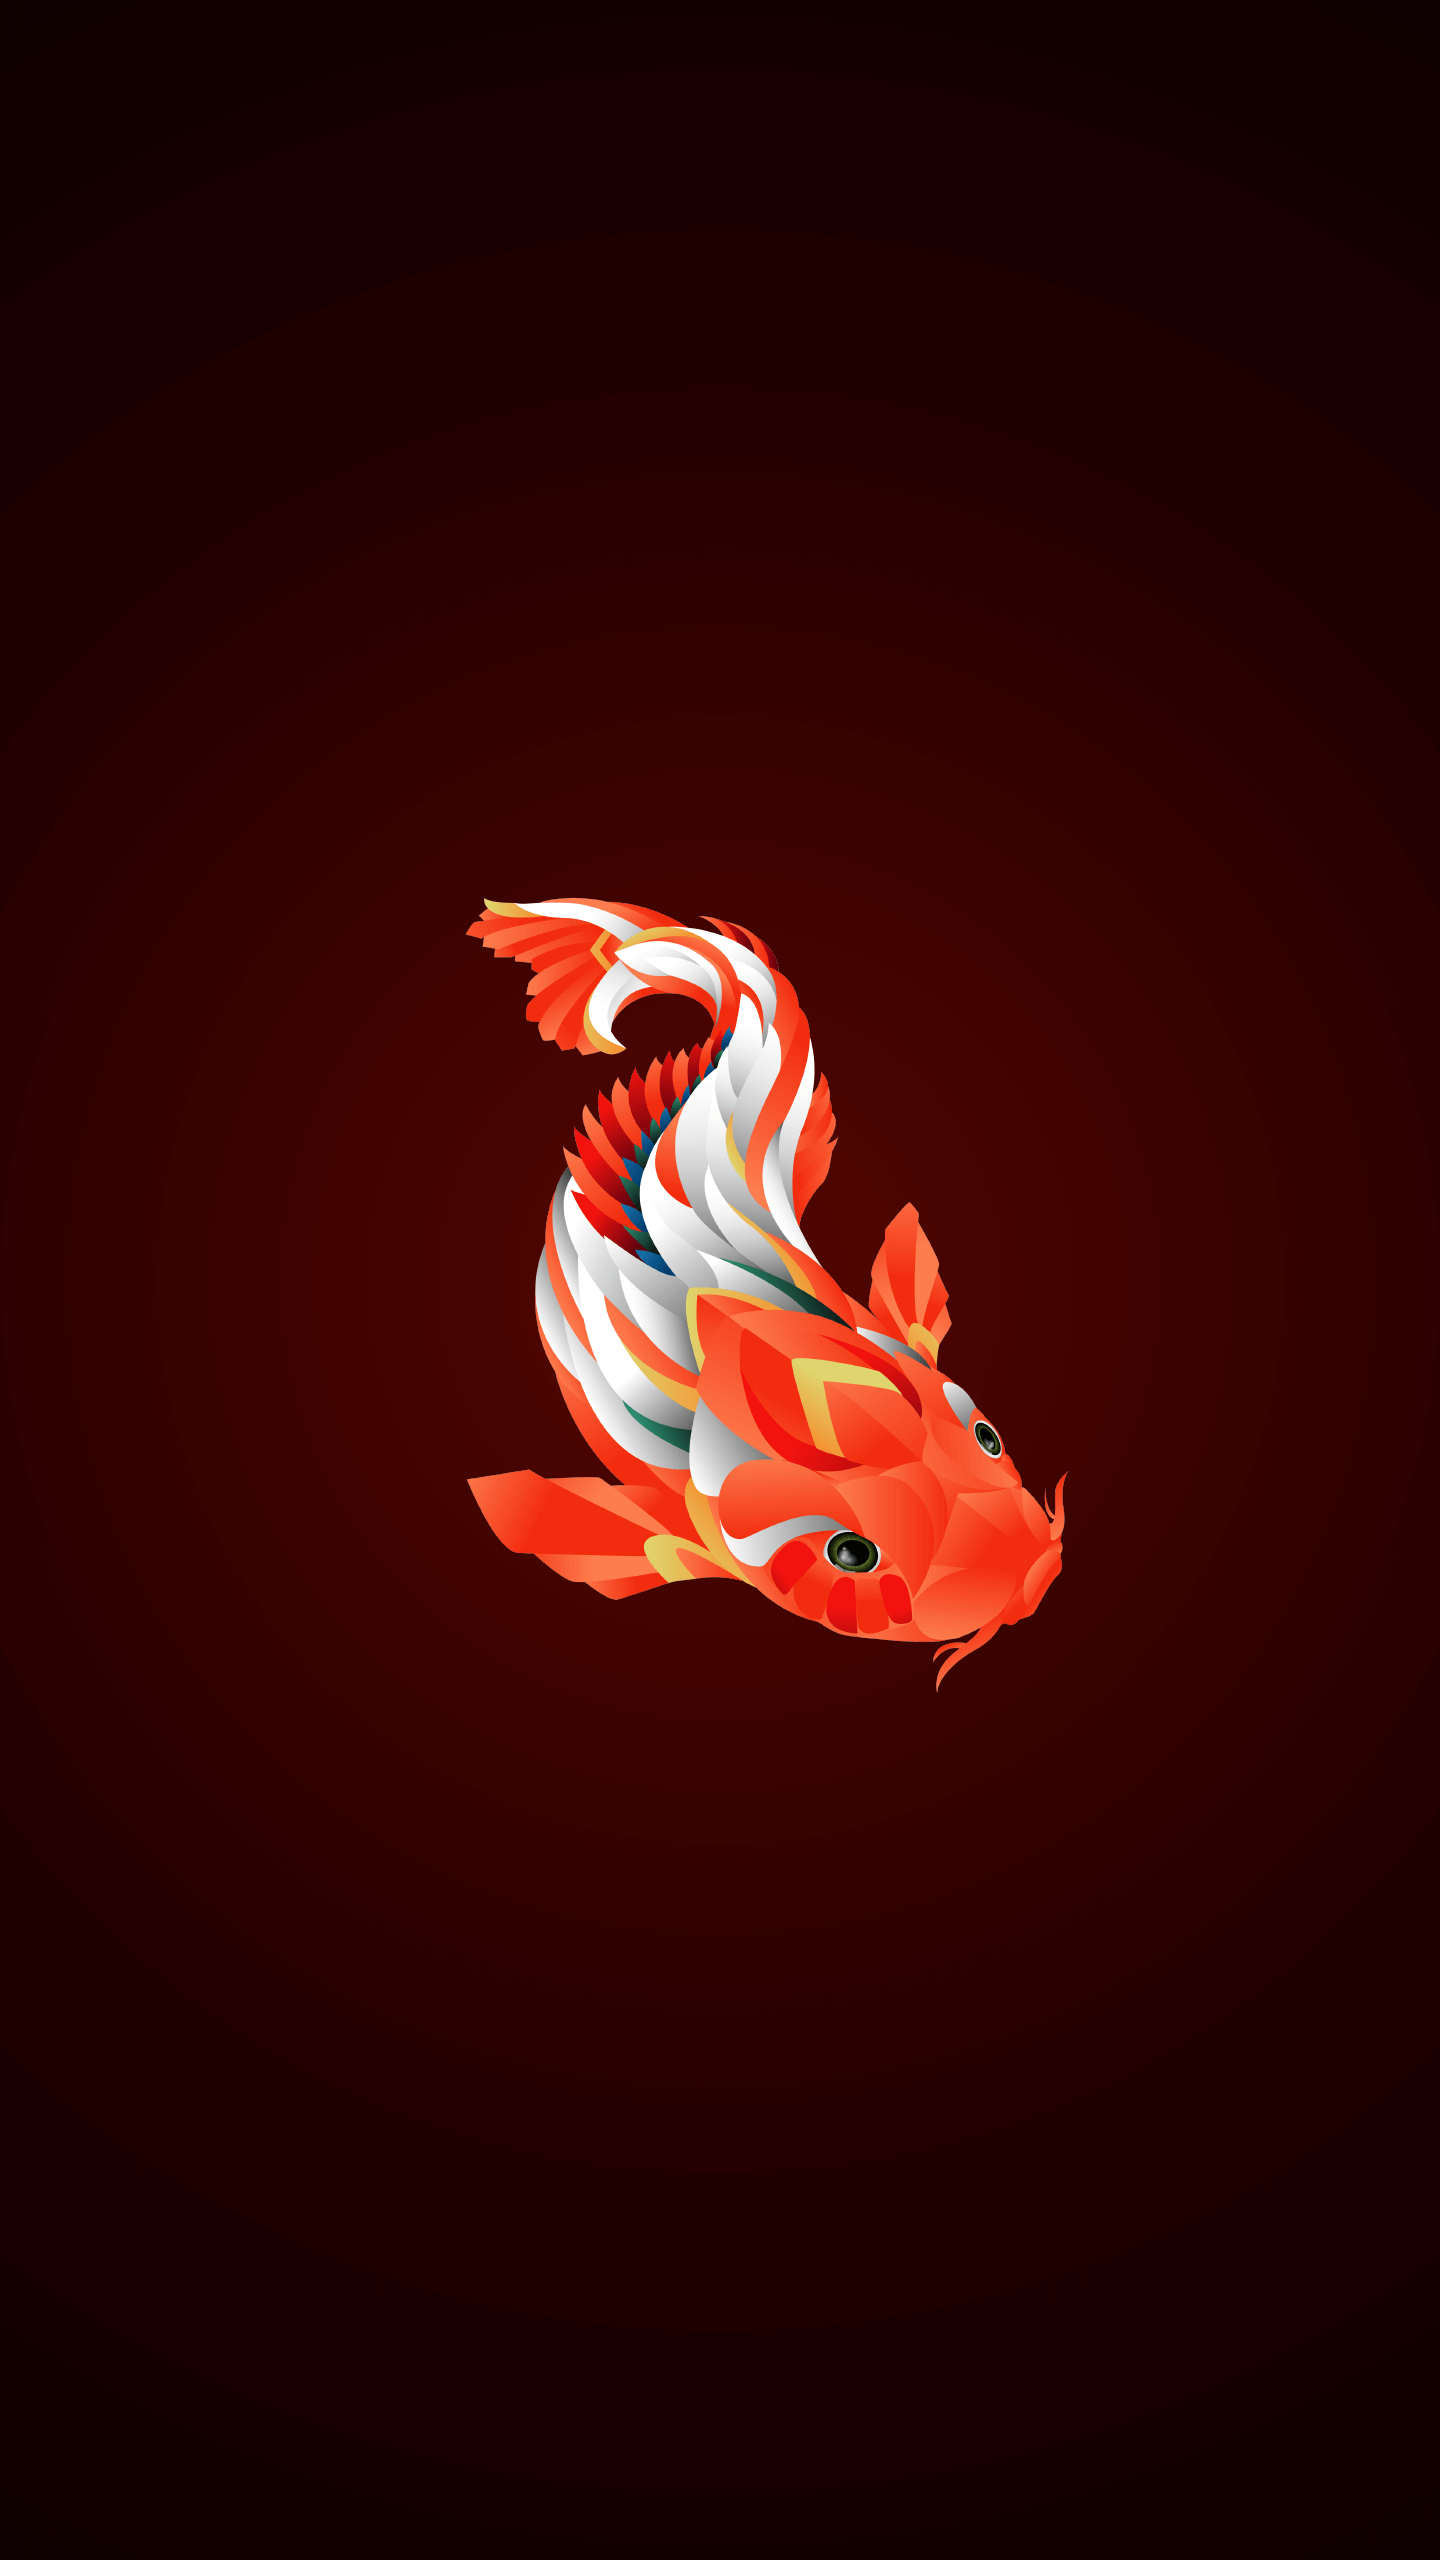 Koi Fish iPhone Wallpaper